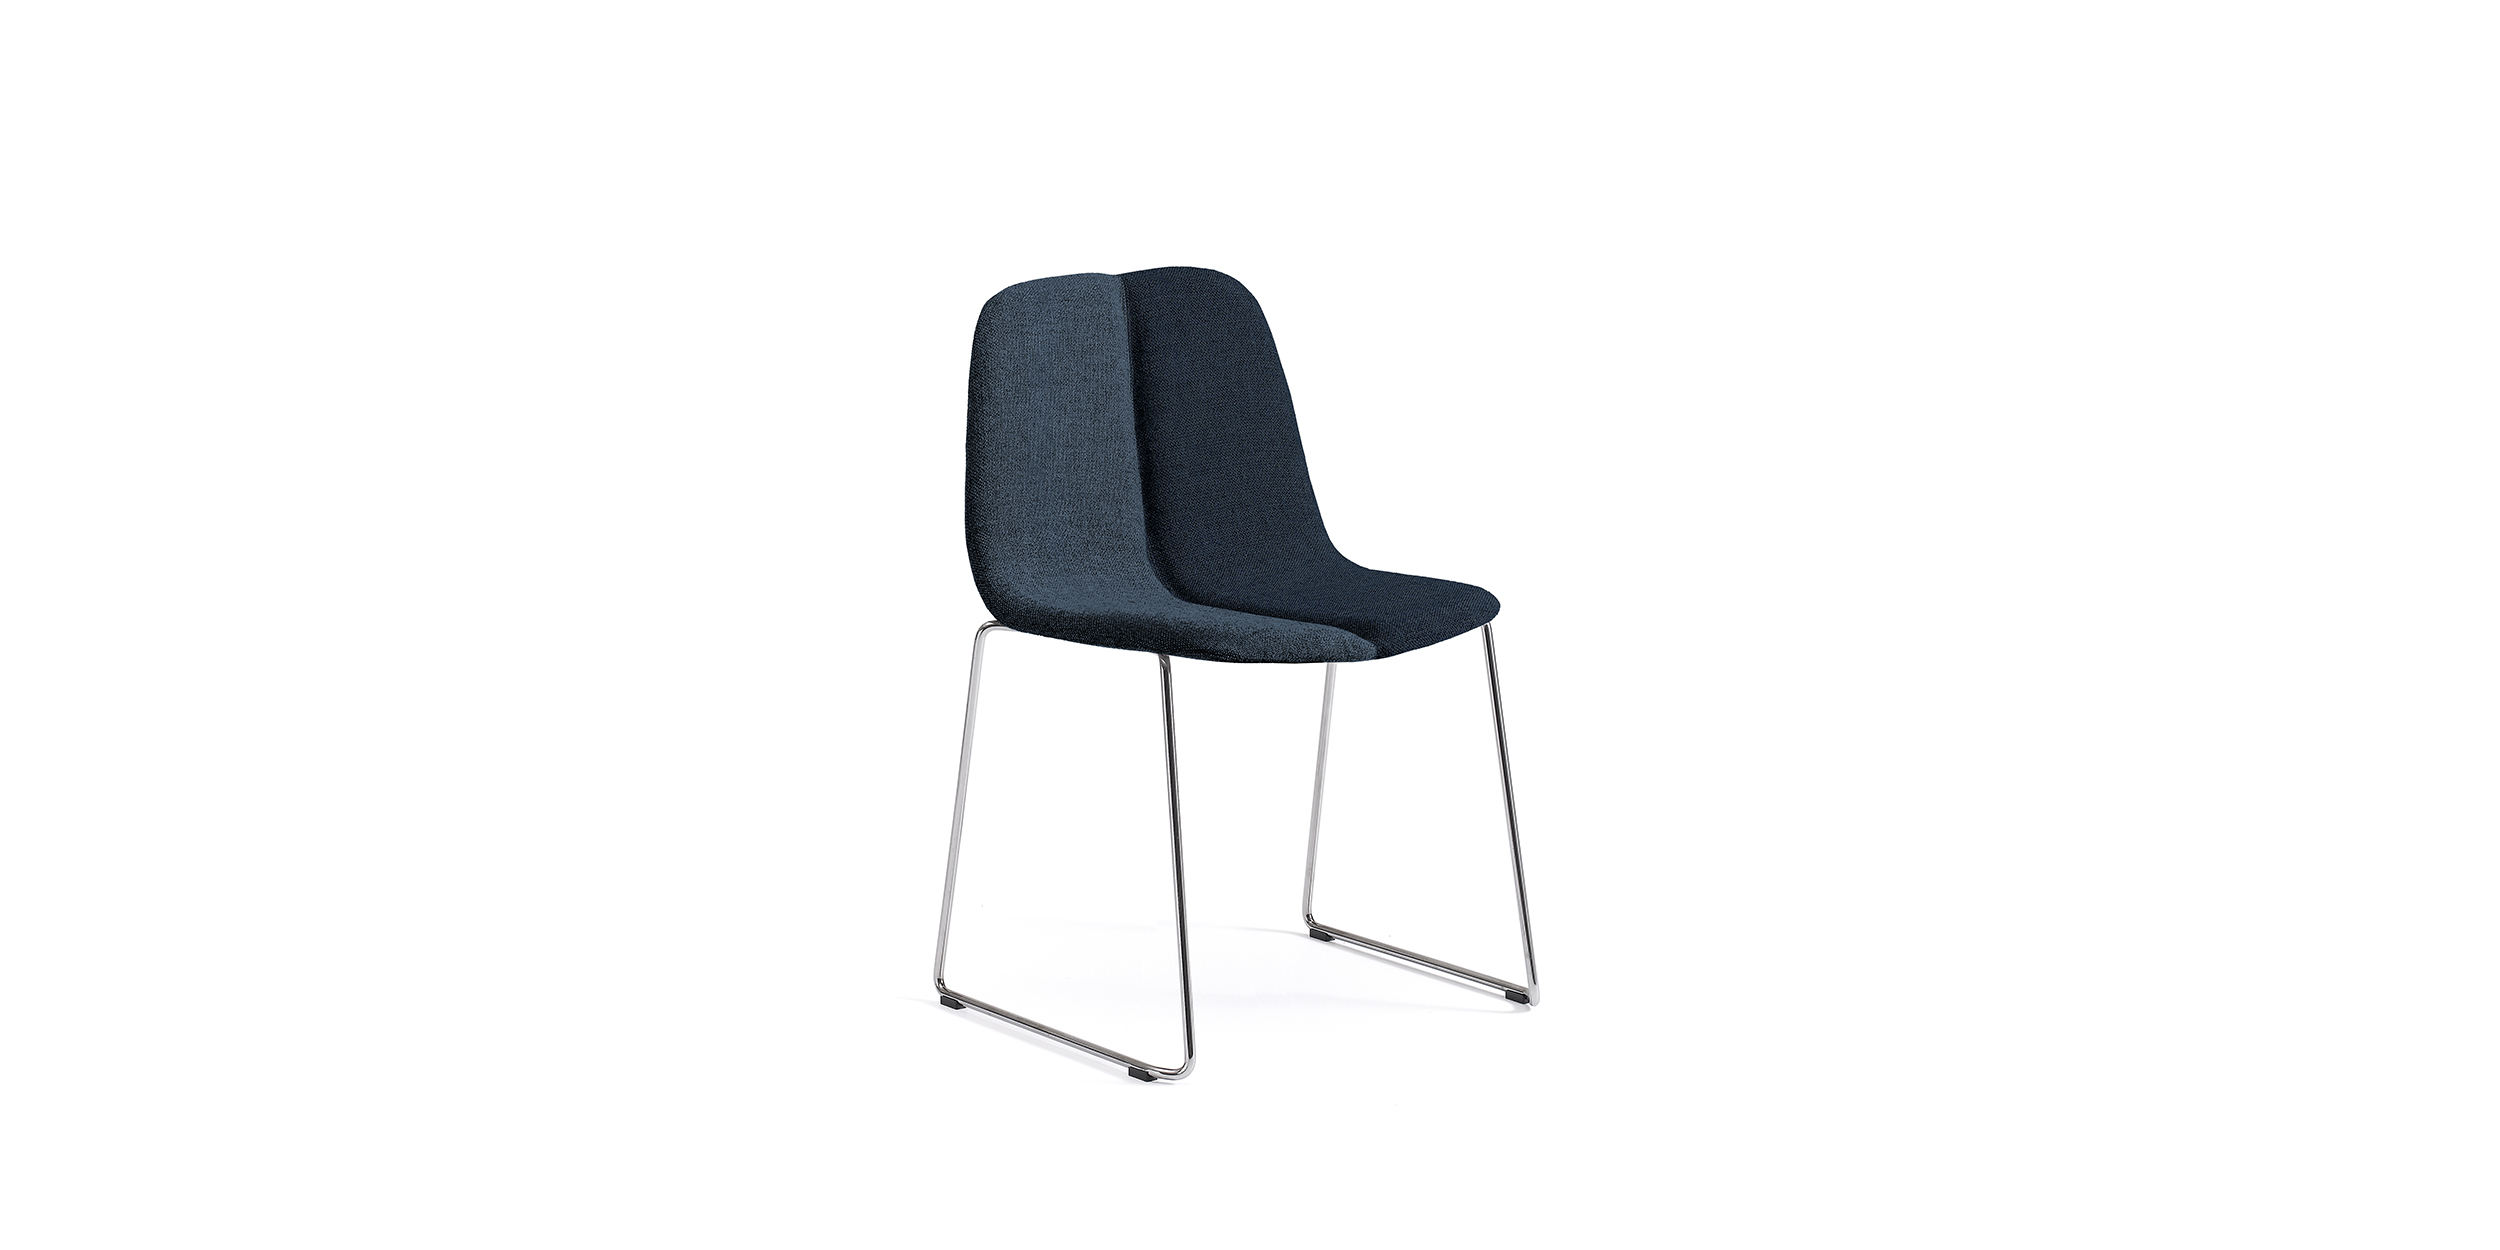 Duo, Chair by Patrick Norguet